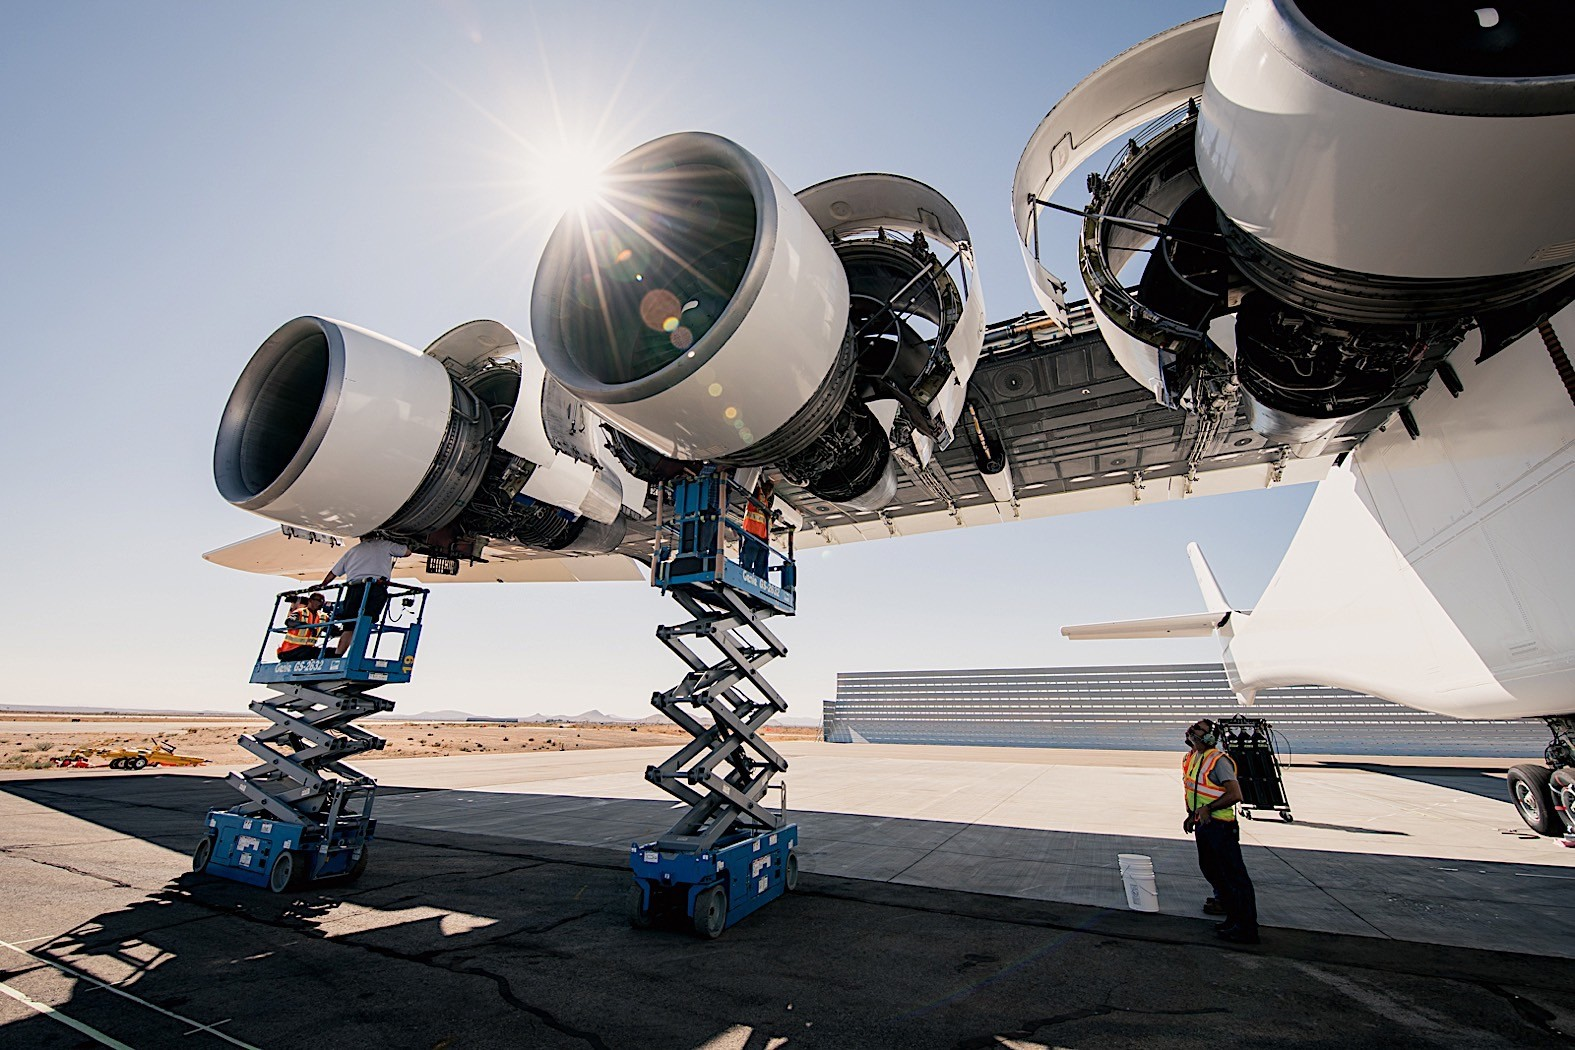 Stratolaunch Pegasus To Fly In 2020  More Spacecraft To